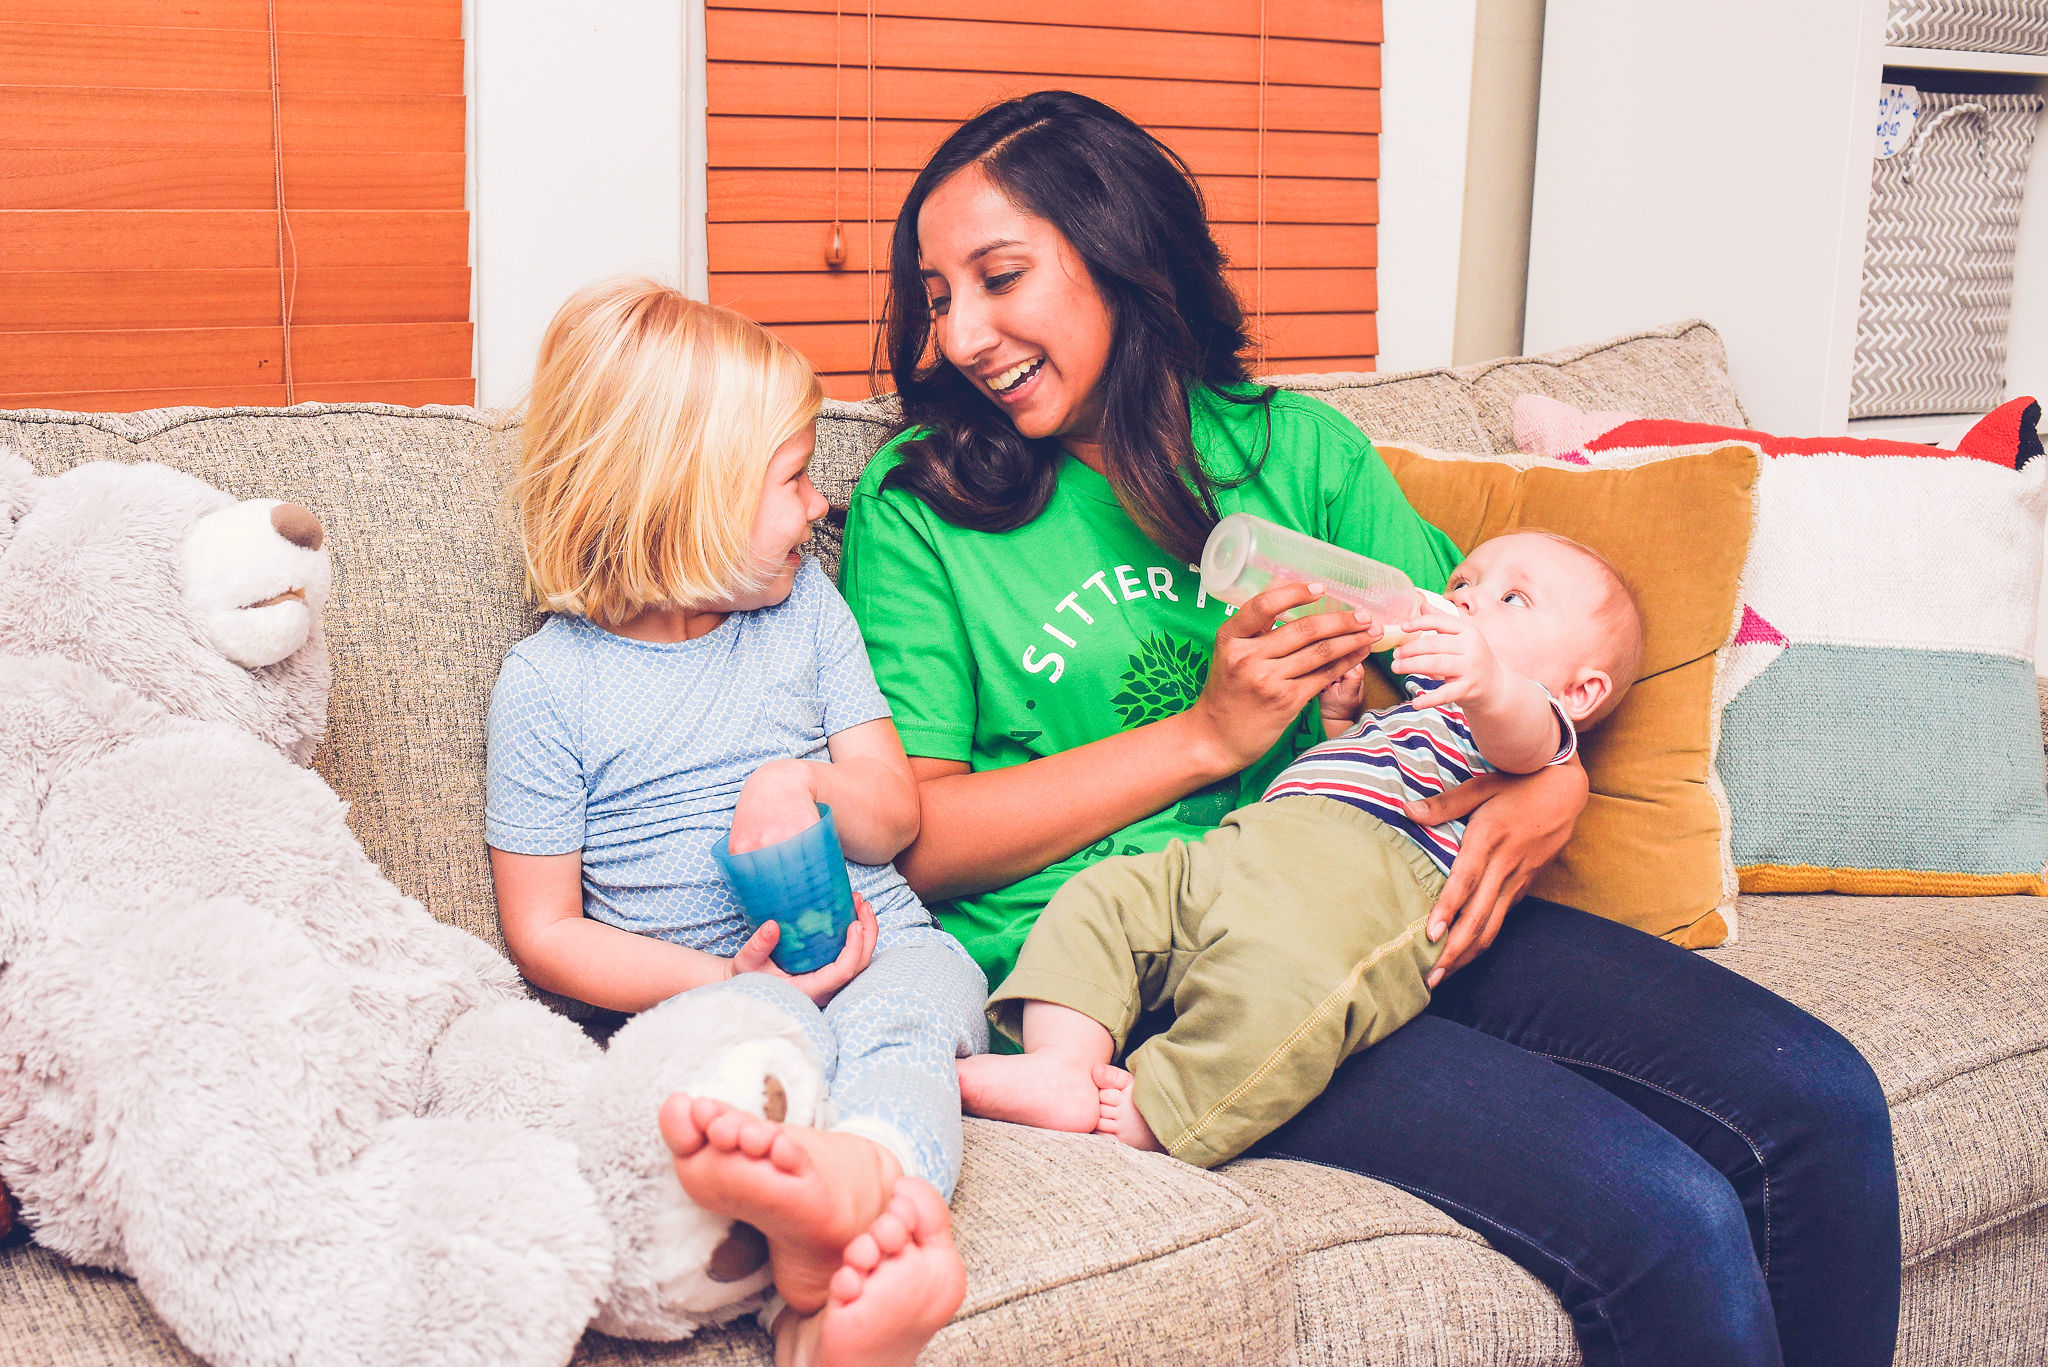 Sitter feeding baby a bottle while talking to toddler